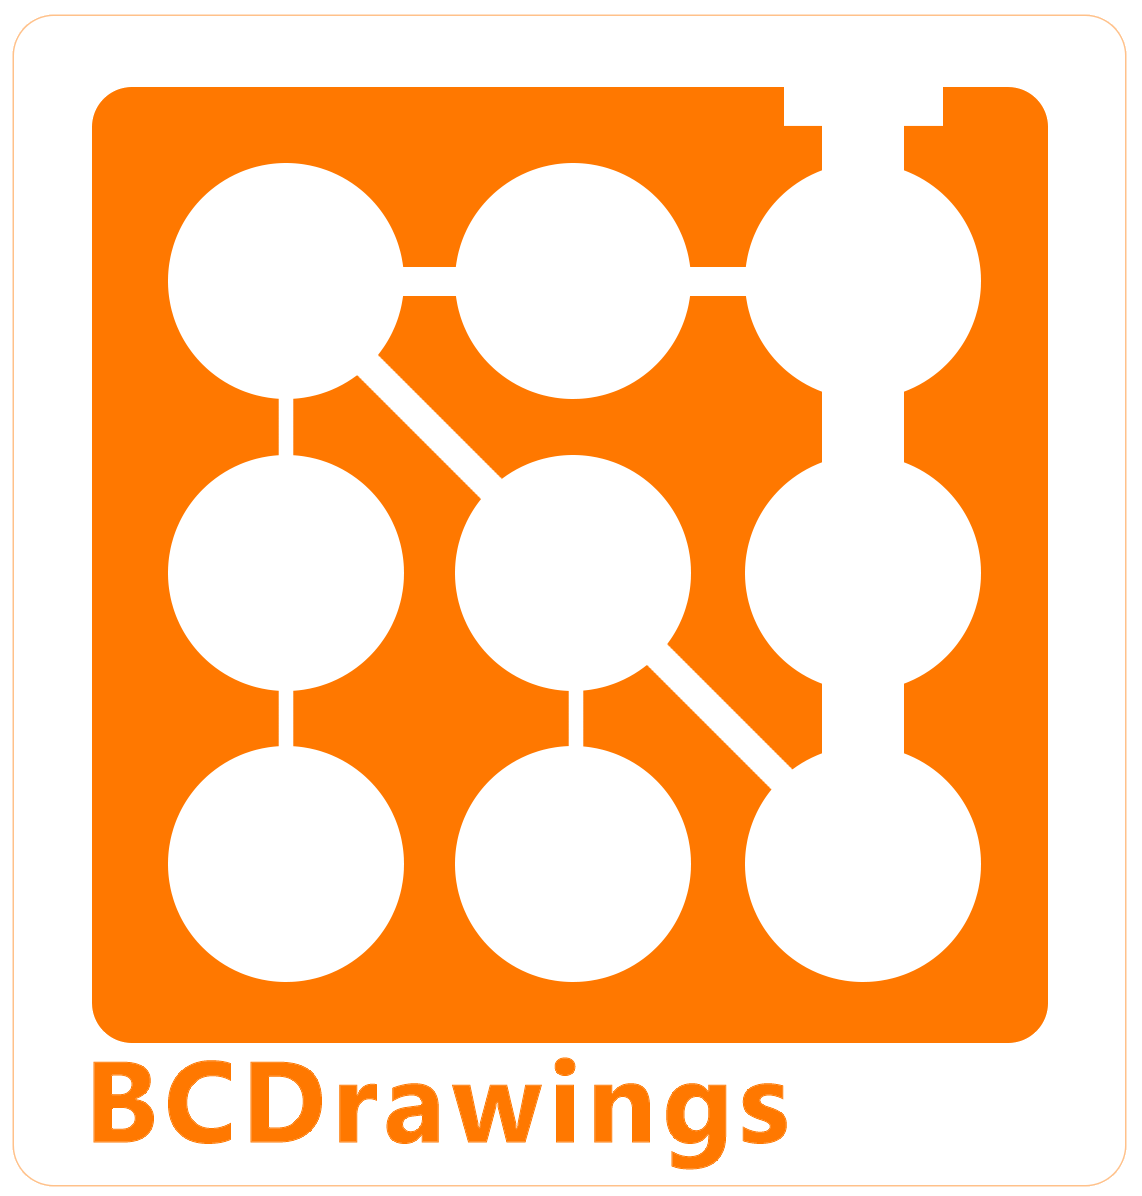 Building Control Drawings Ltd